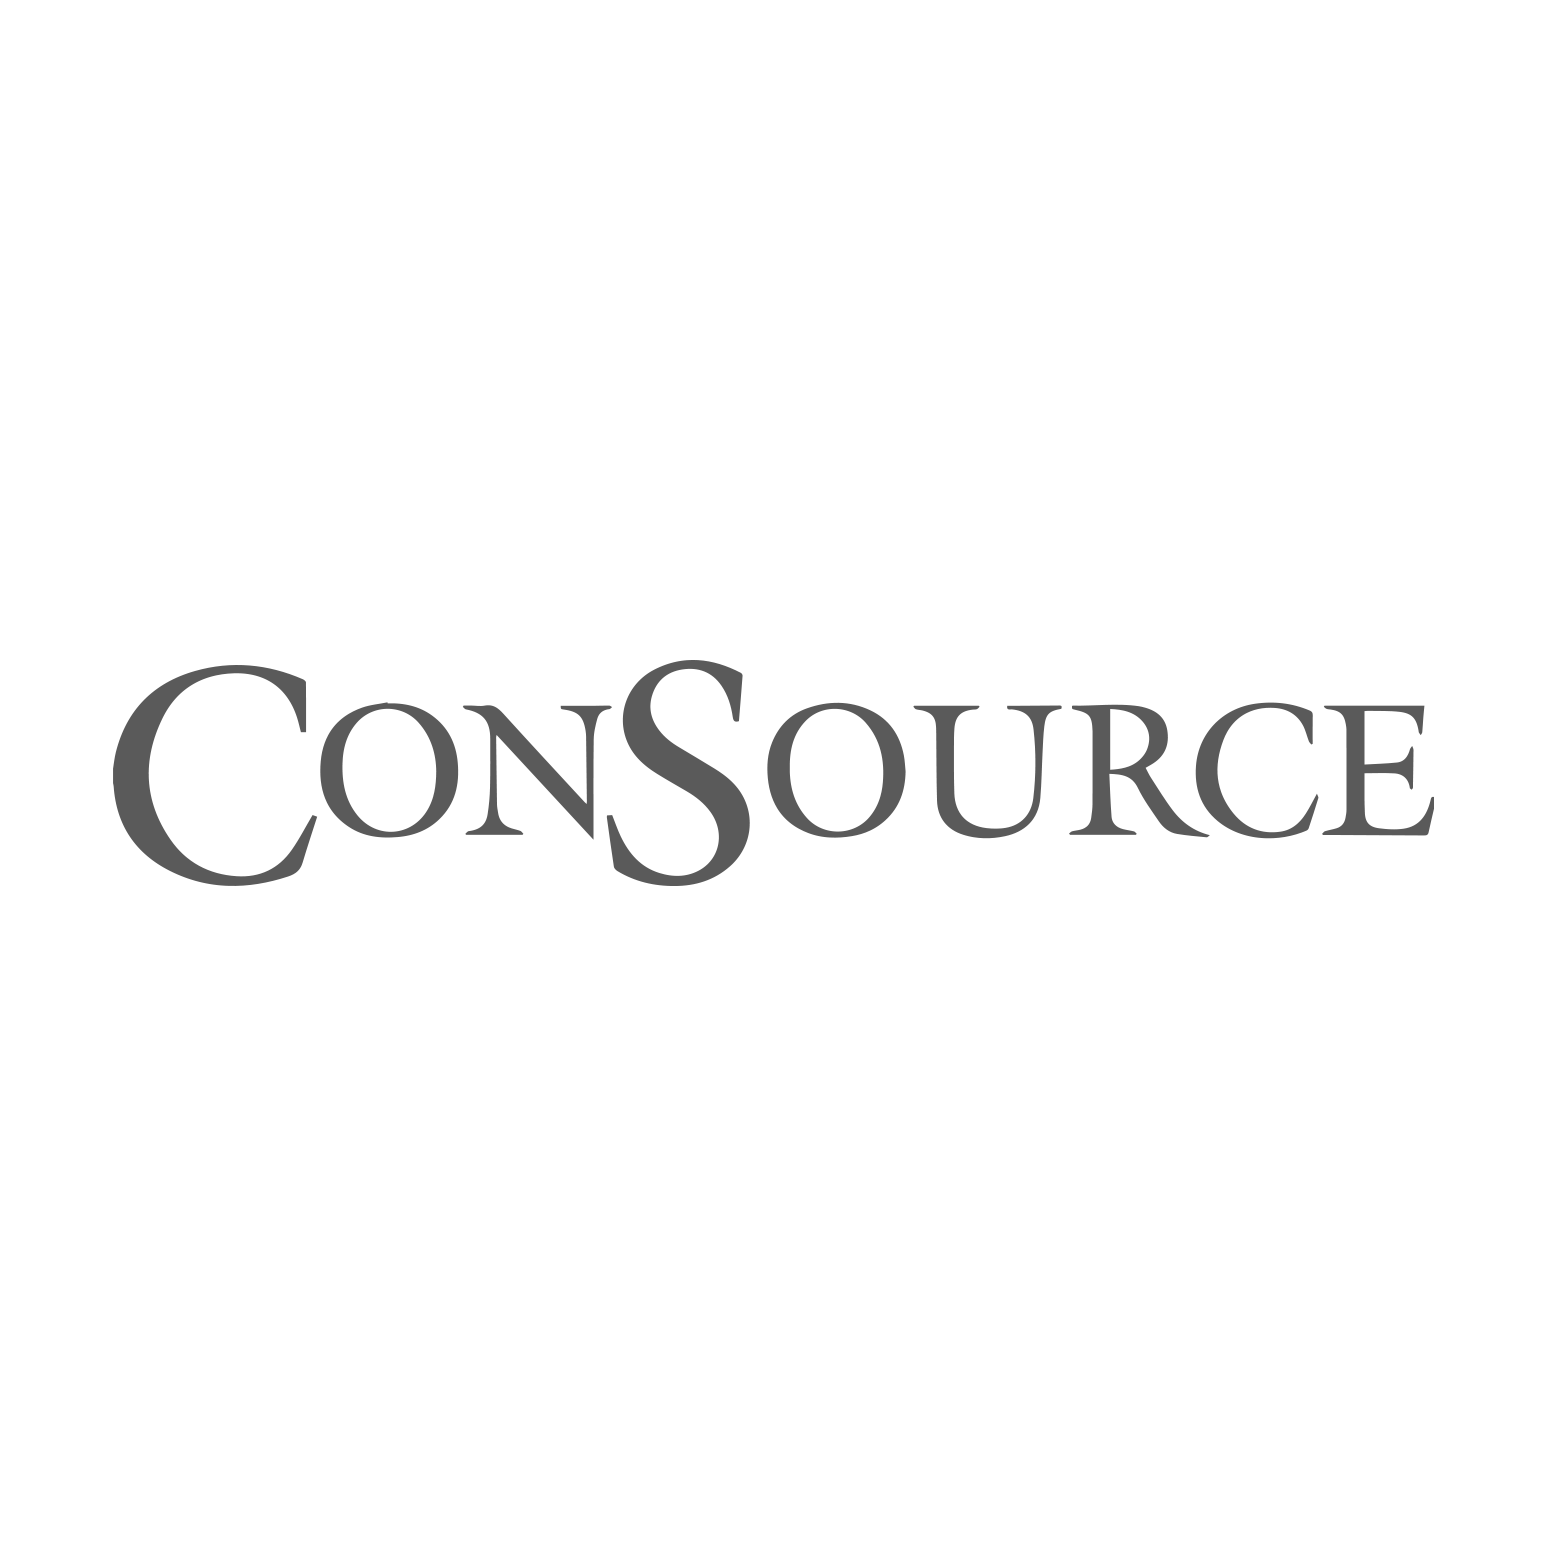 ConSource: The Constitutional Sources Project